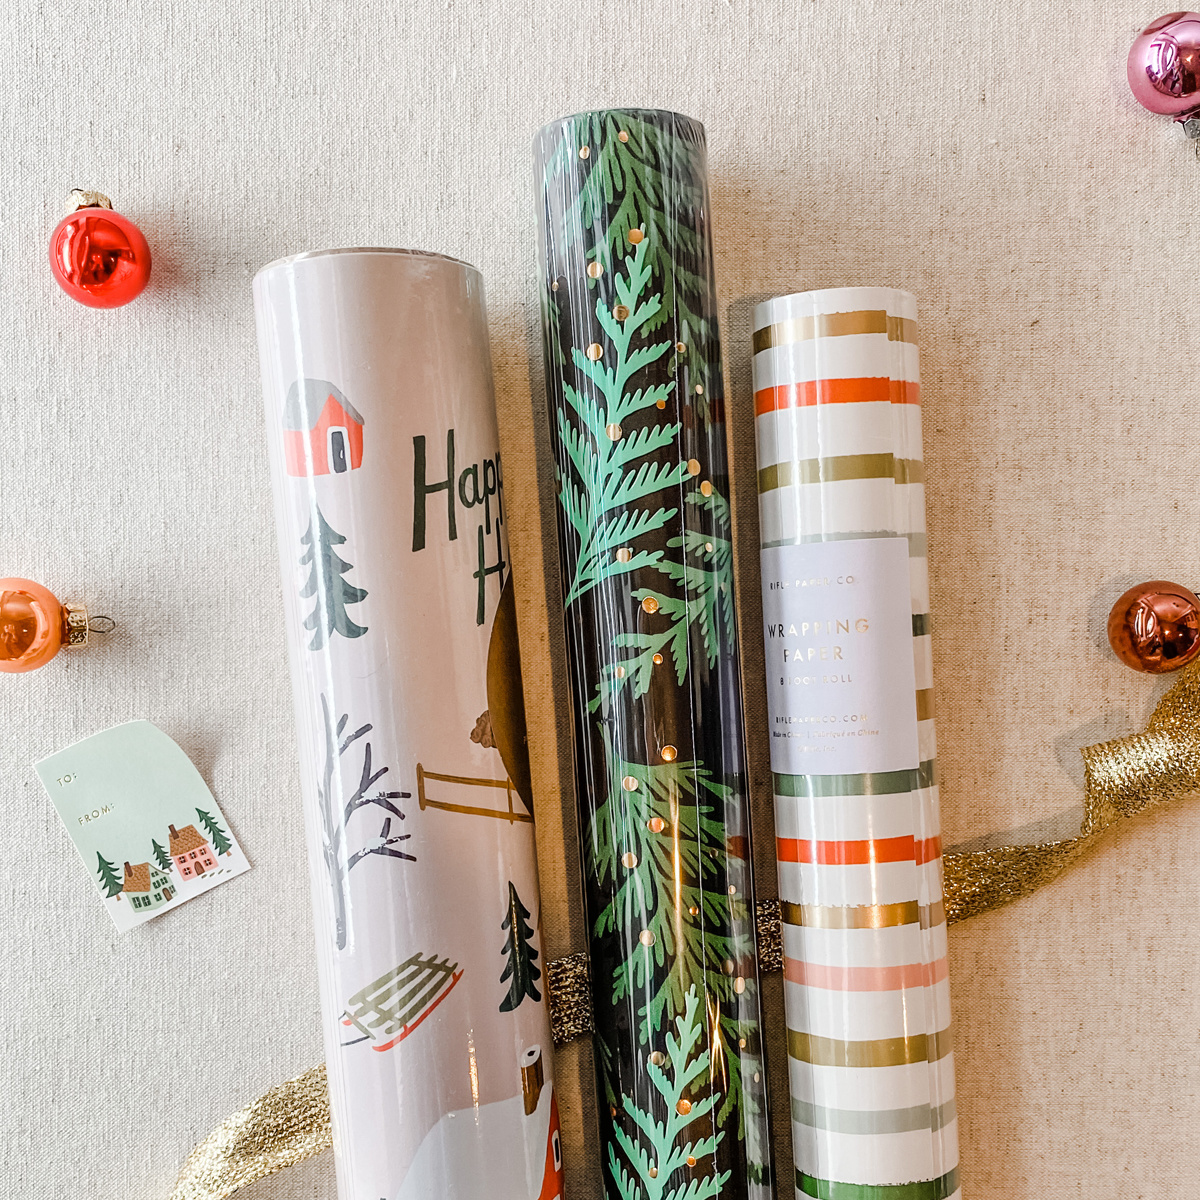 Gus and Ruby Letterpress - GR Tree Farm Set of 3 Wrapping Paper Rolls